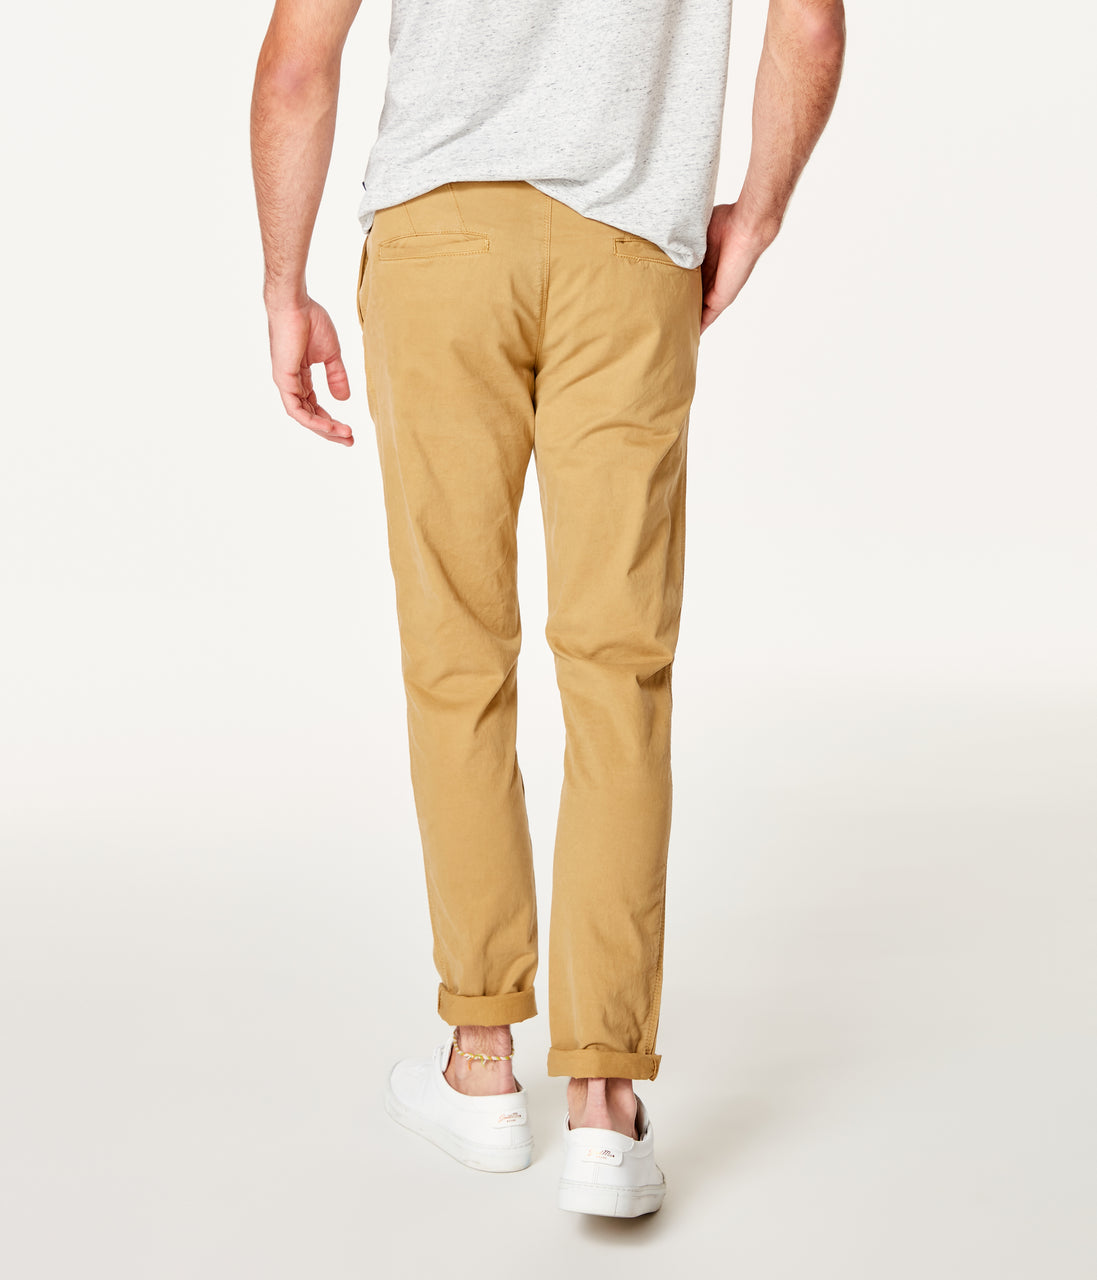 Star Chino in Pro Stretch Twill - Khaki - Good Man Brand - Pro Stretch Twill Star Chino - Khaki